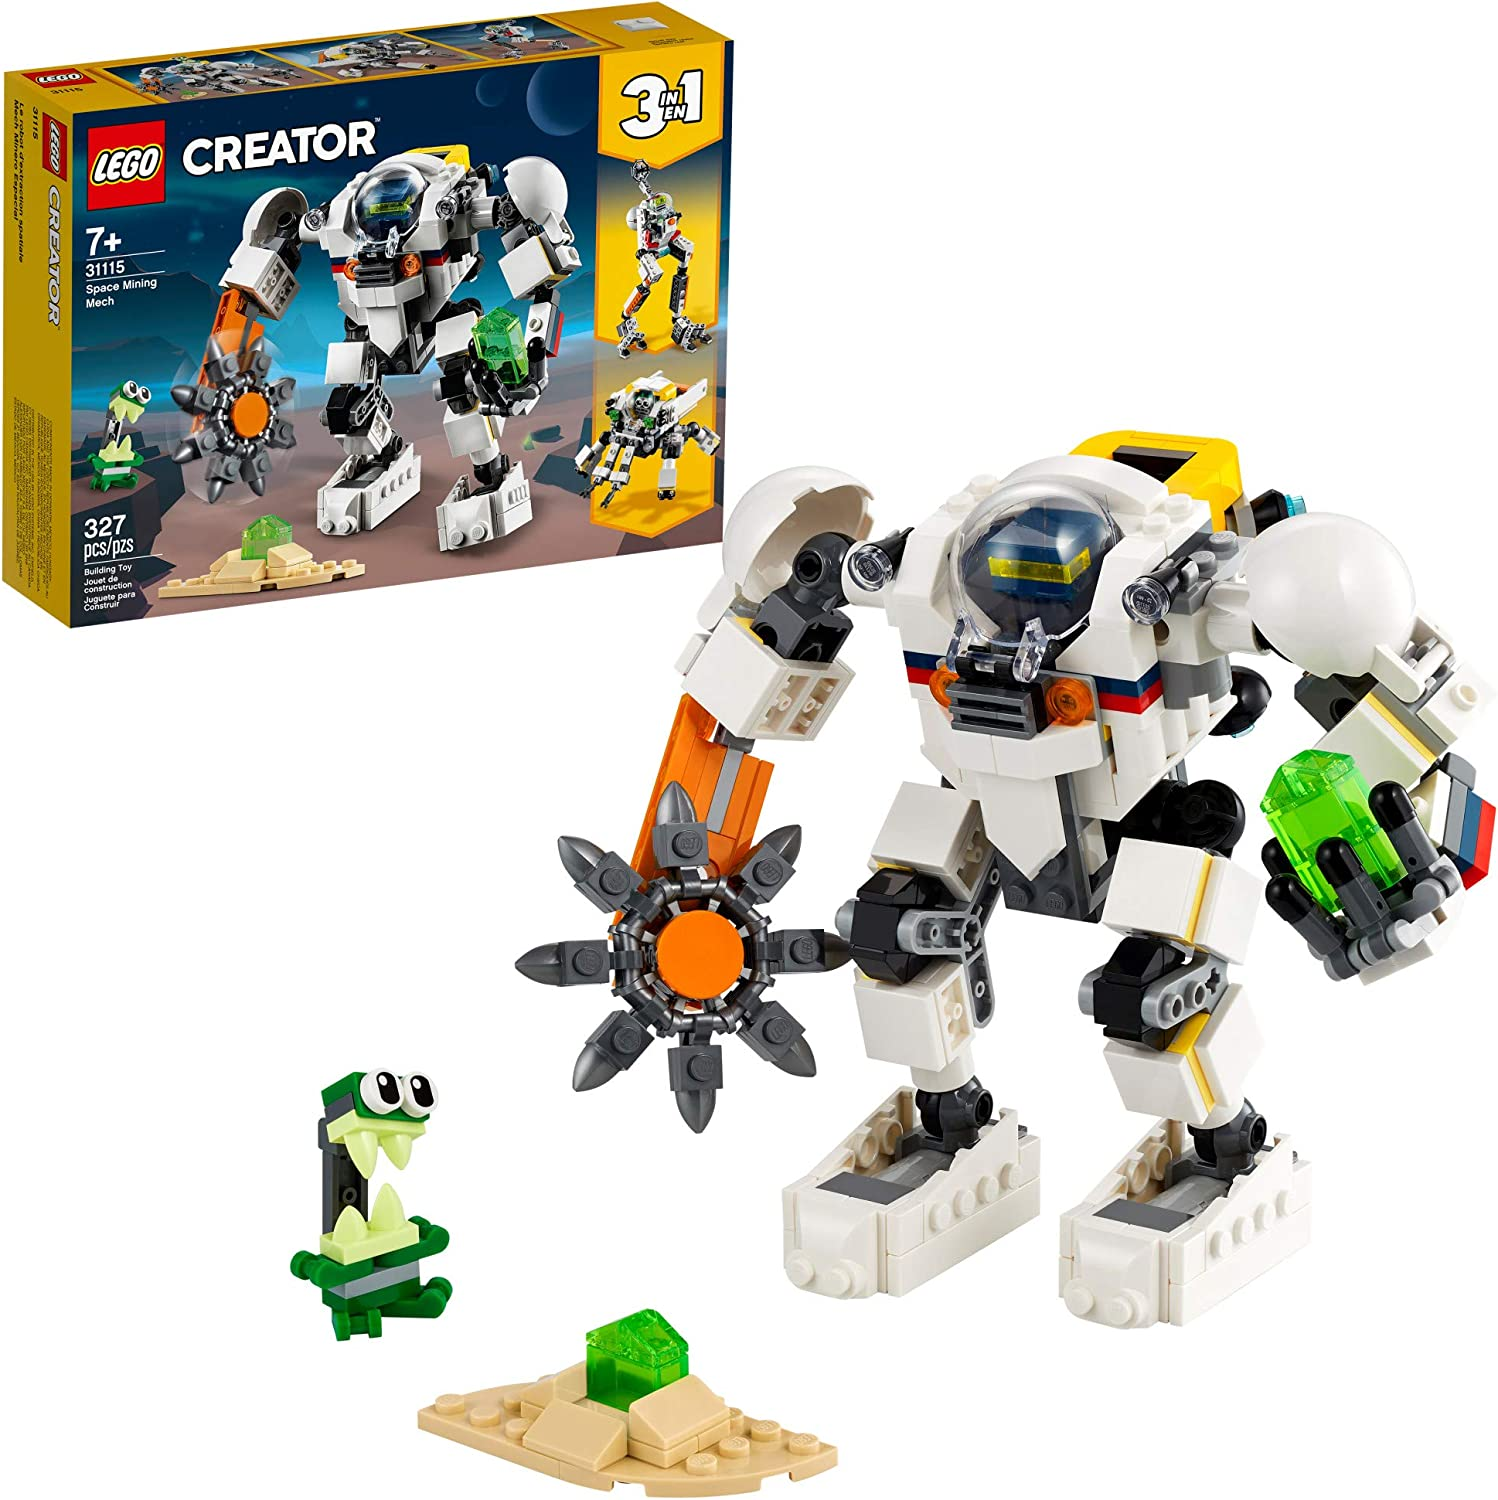 LEGO Creator 3in1 Space Mining Mech 31115 Building Kit Featuring a Mech Toy, Robot Toy and Alien Figure; Makes The Best Toy for Kids Who Love Creative Fun, New 2021 (327 Pieces)